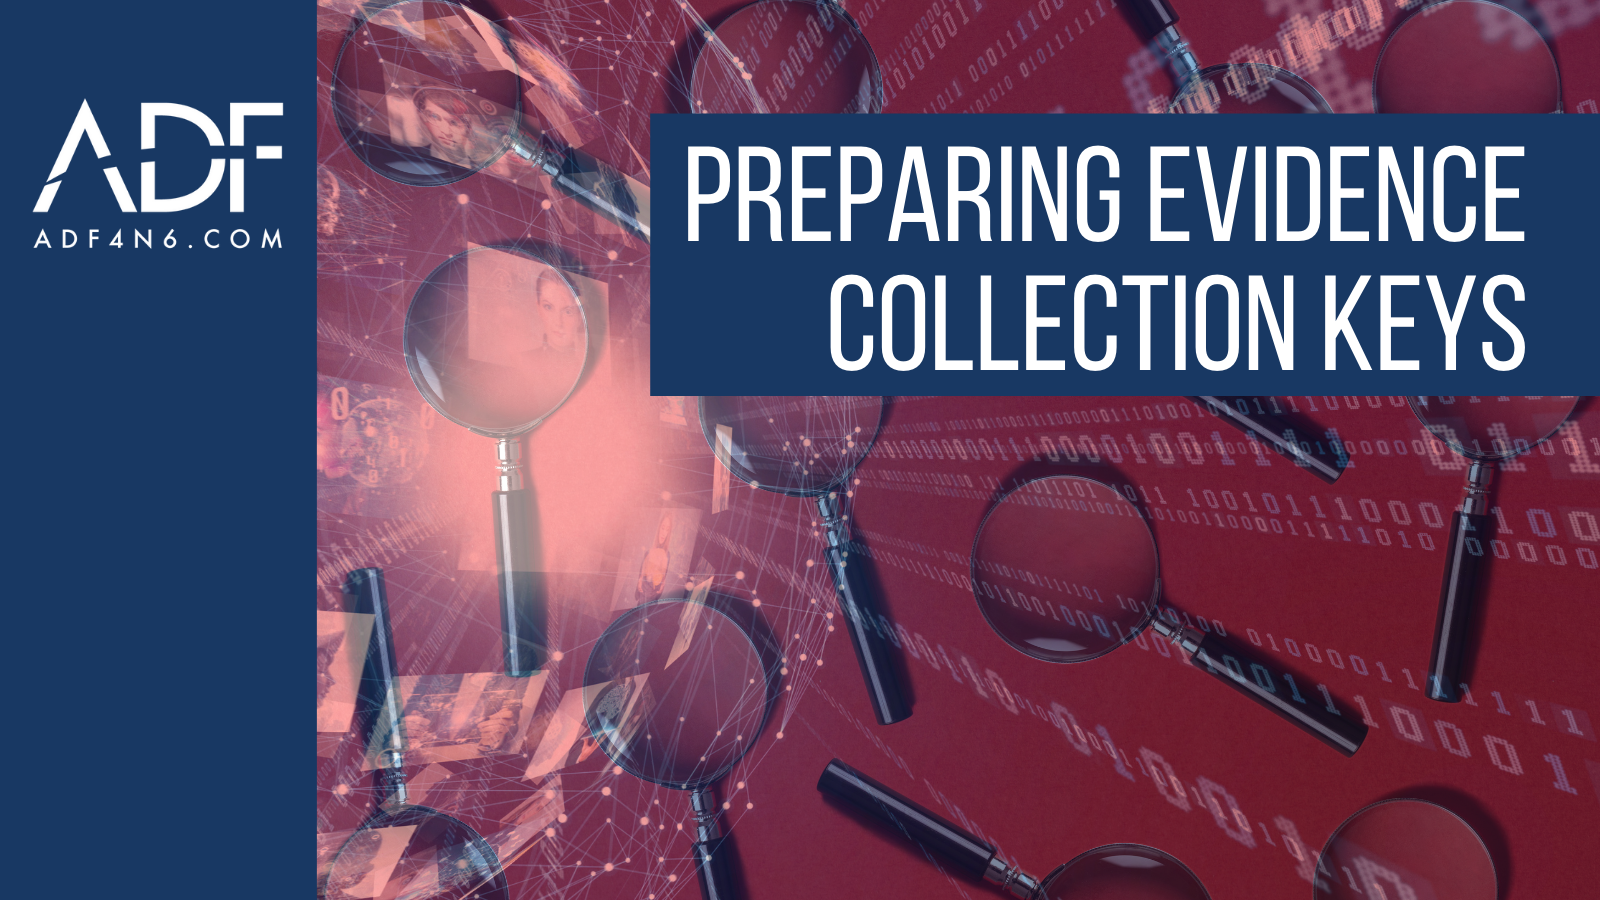 Prepare Evidence Collection Keys for a Digital Forensic Investigation